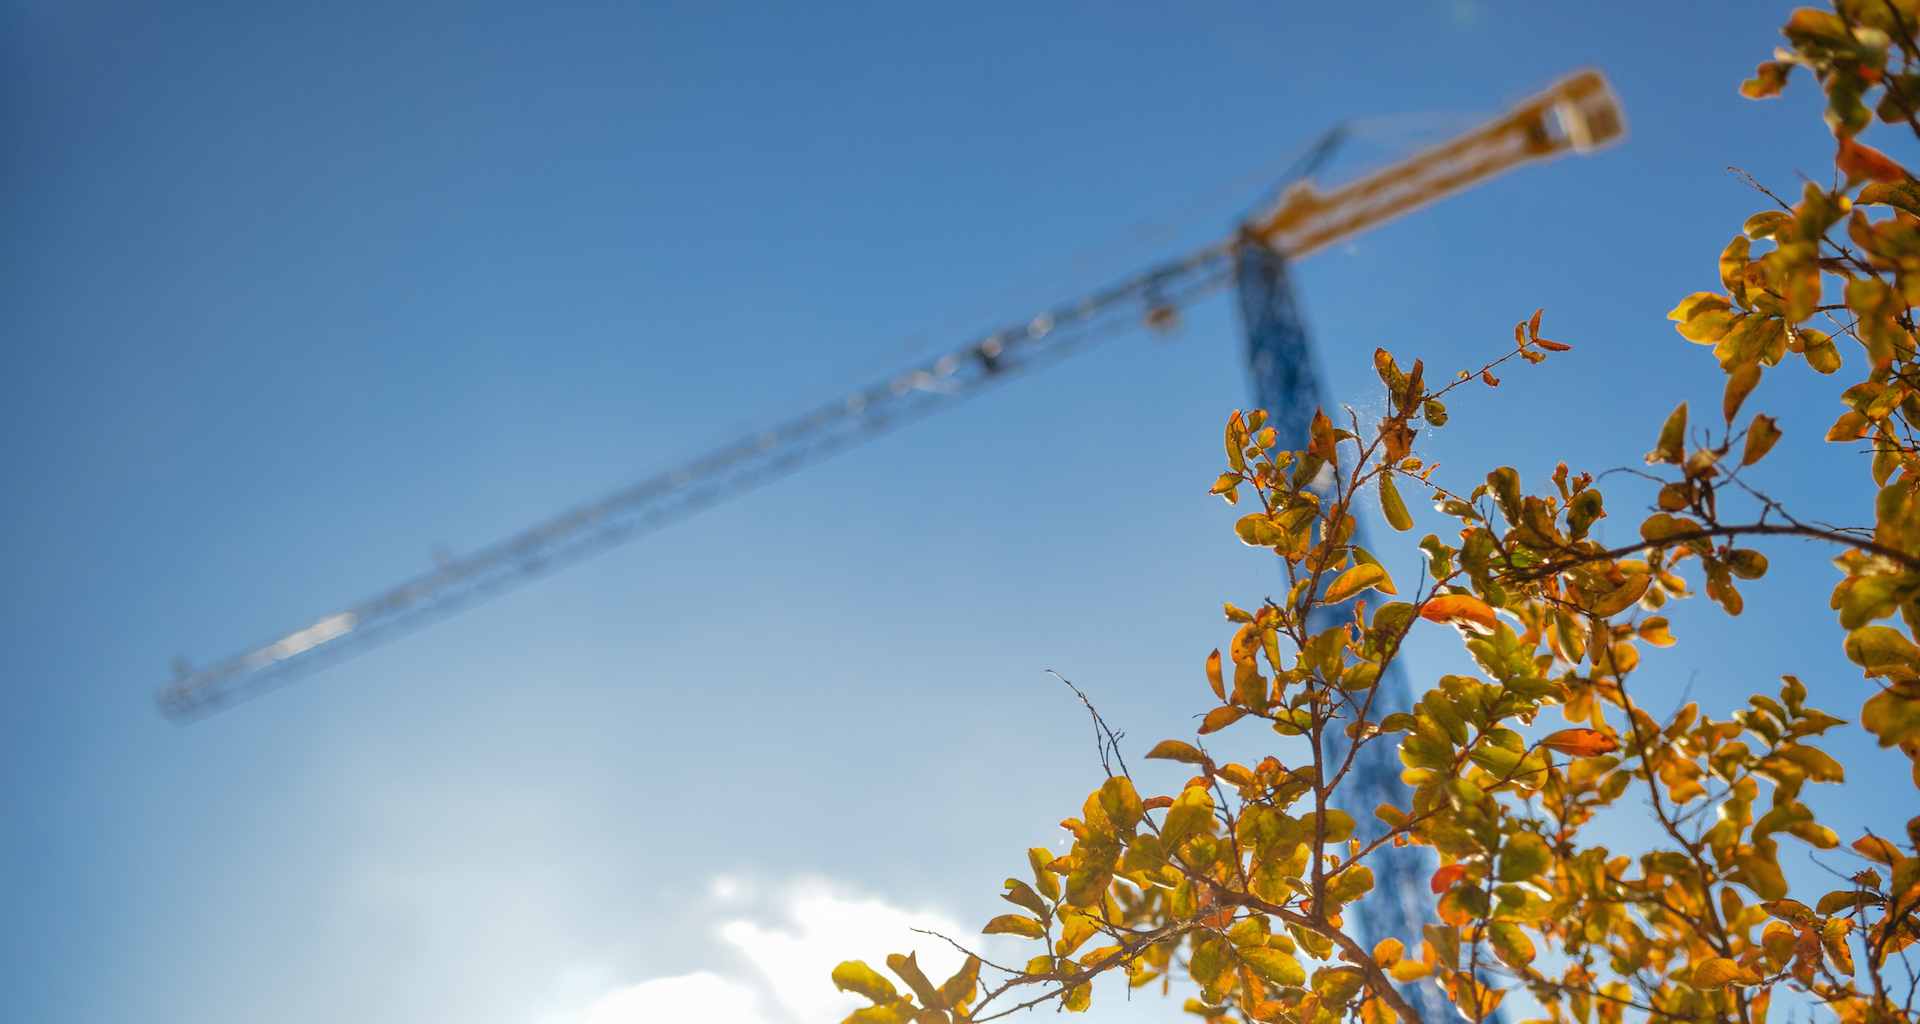 construction-industry-crane-leaves